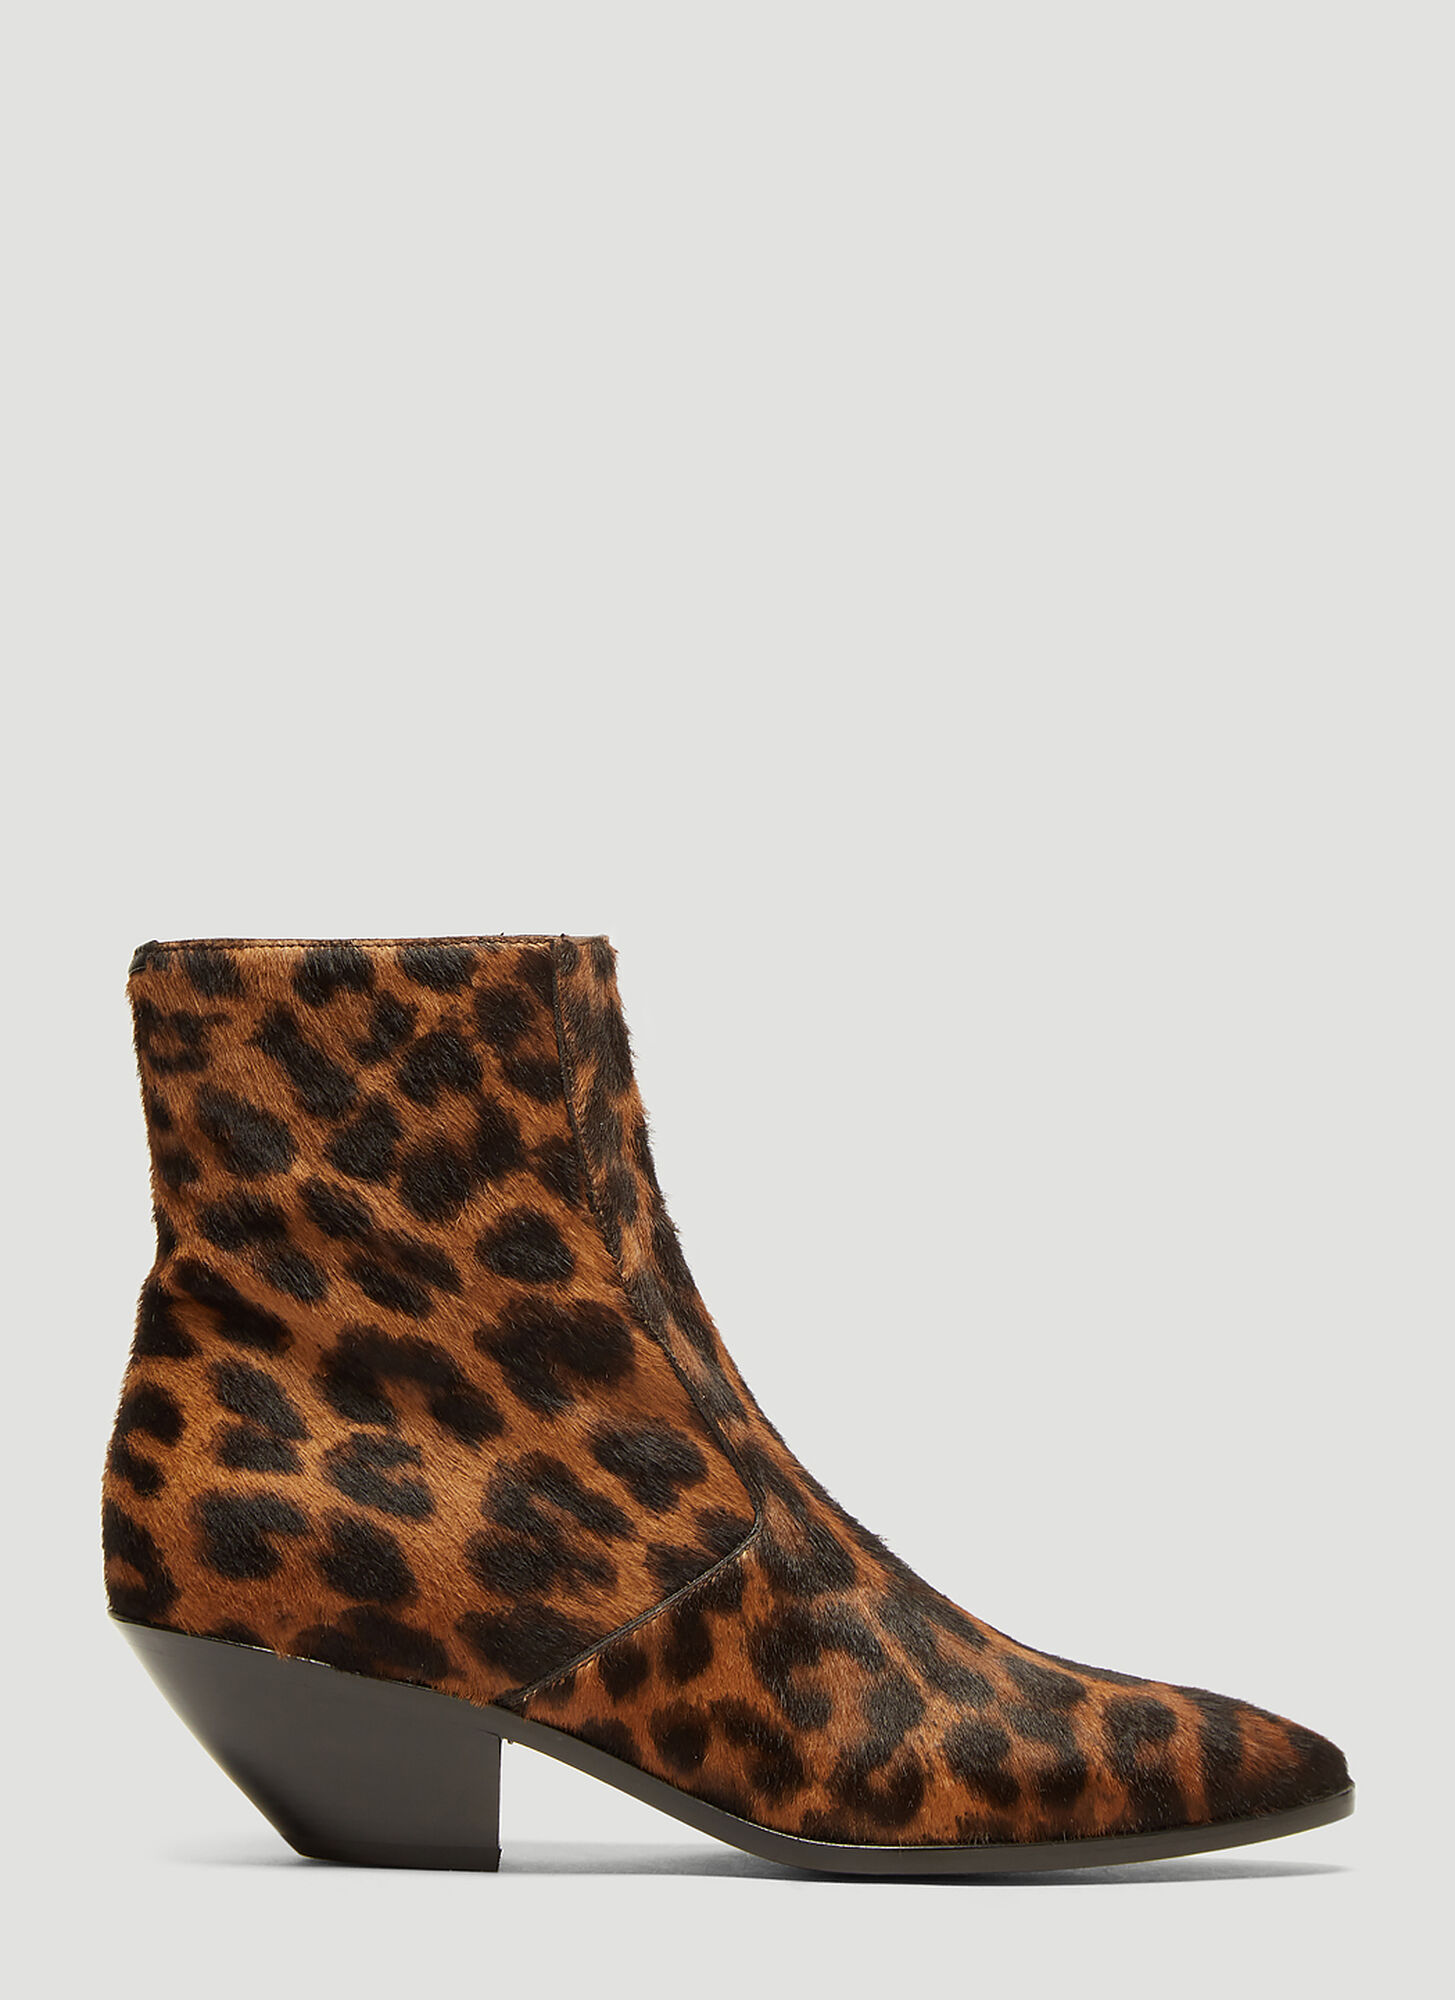 Photo of Saint Laurent West Leopard-Print Calf-Hair Boots in Brown - Saint Laurent Boots